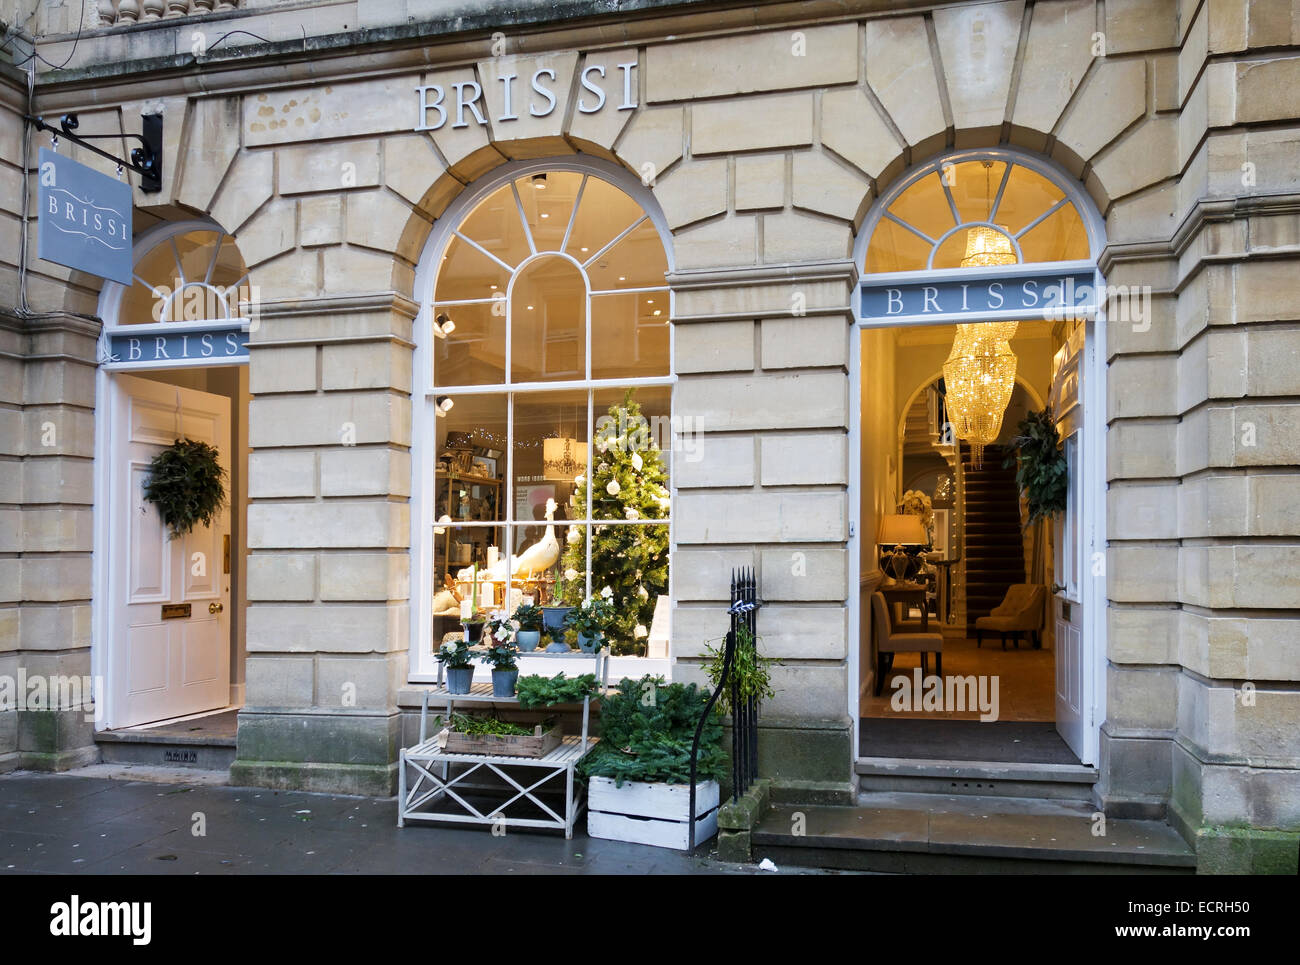 Milsom Street Bath Uk Stock Photos & Milsom Street Bath Uk Stock ...